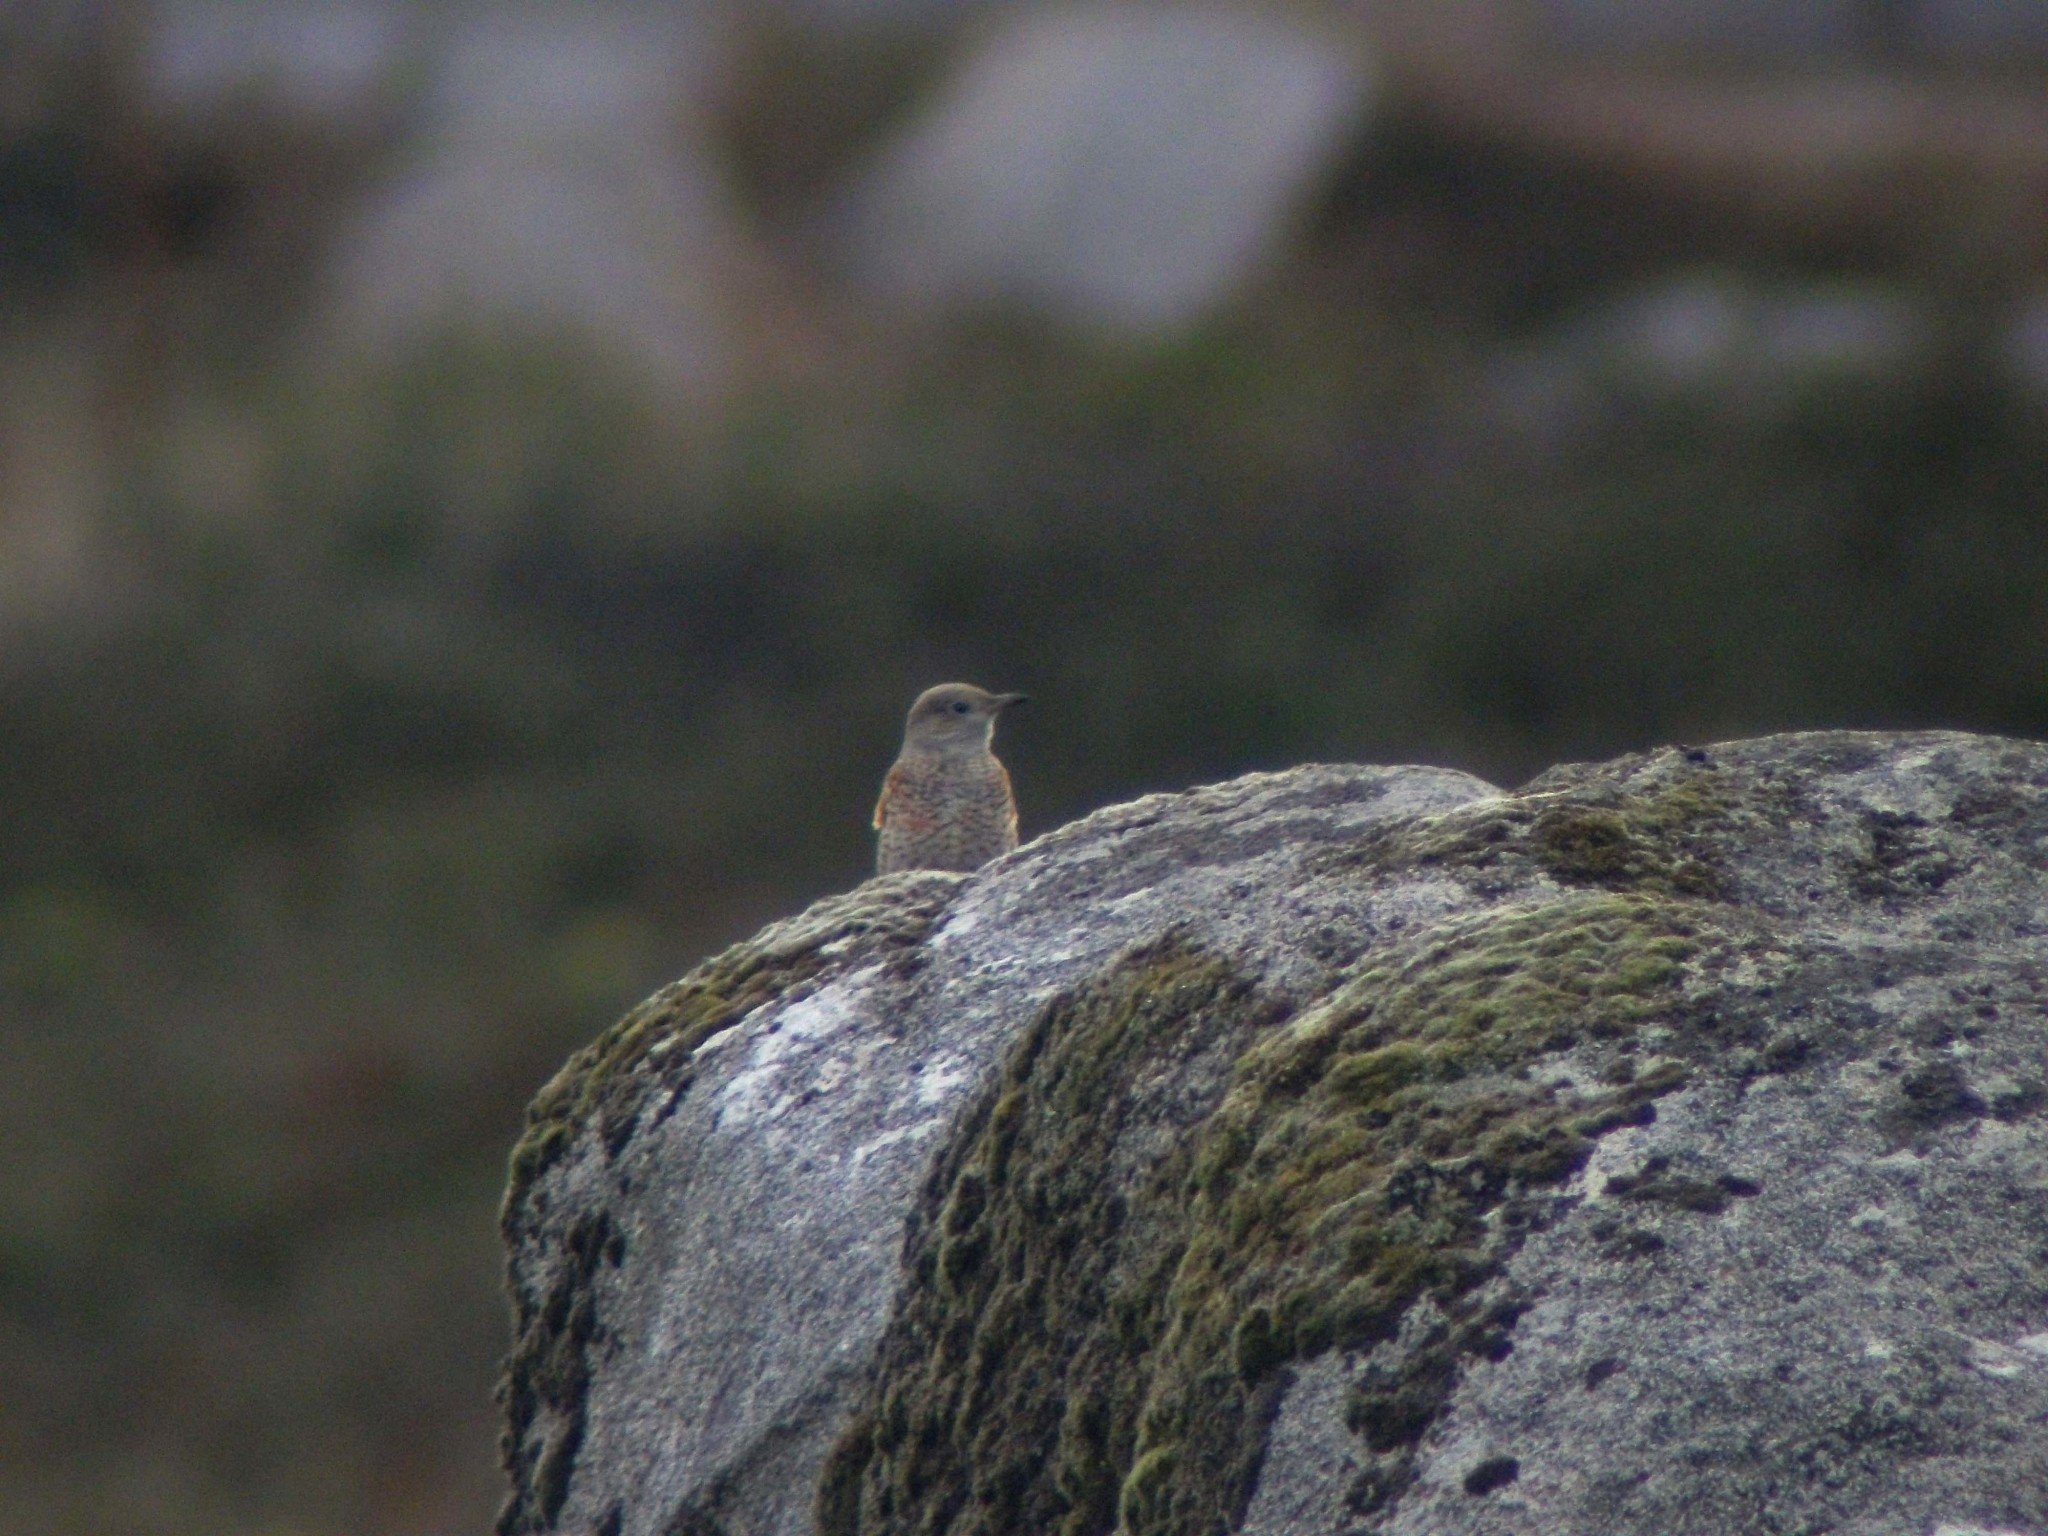 Rock-Thrush on a rock